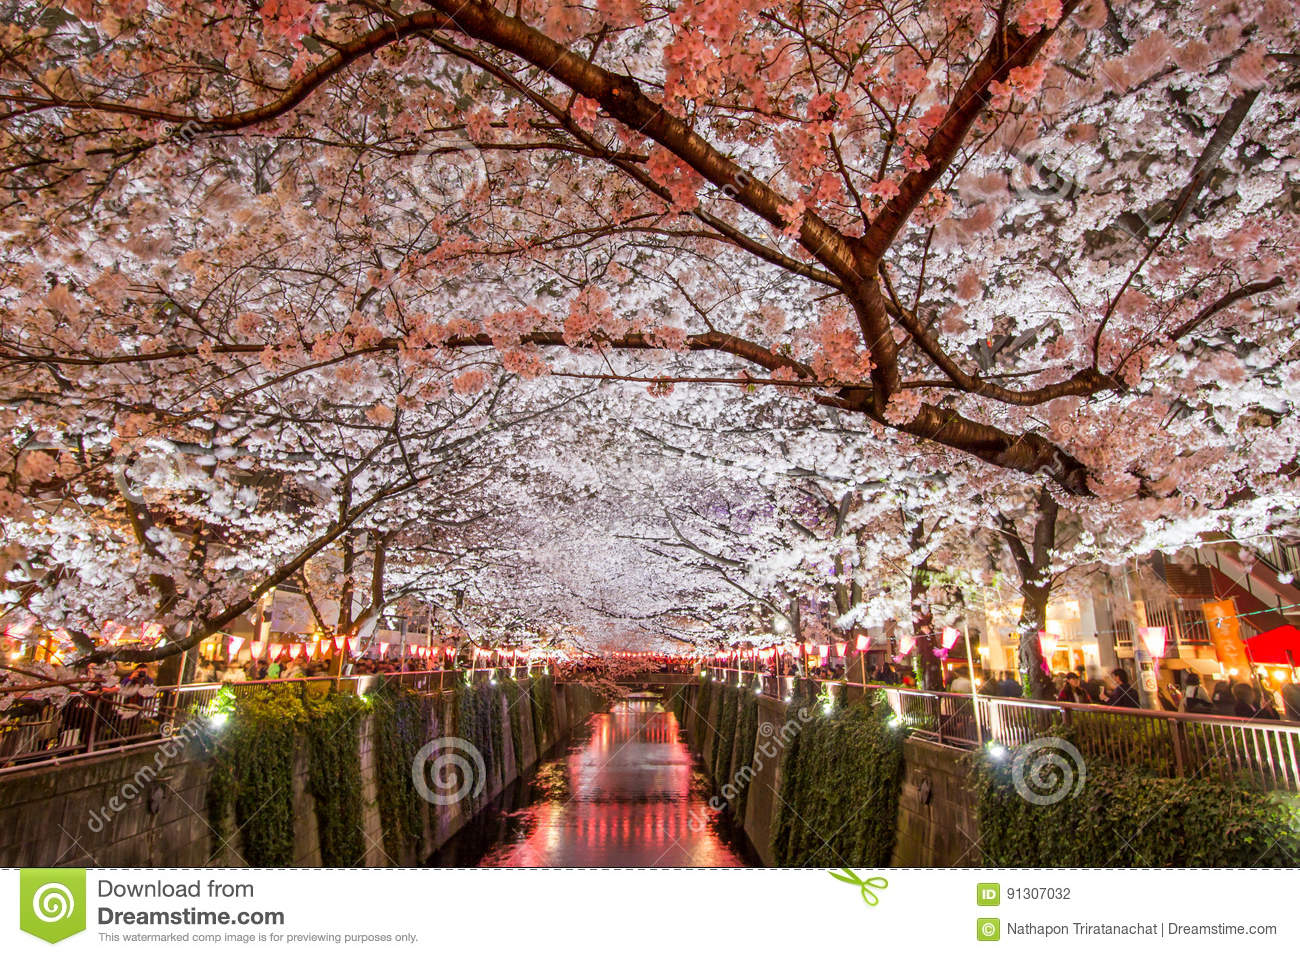 Cherry trees along Meguro River,Meguro-ku,Tokyo,Japan are light up in the evenings of spring.